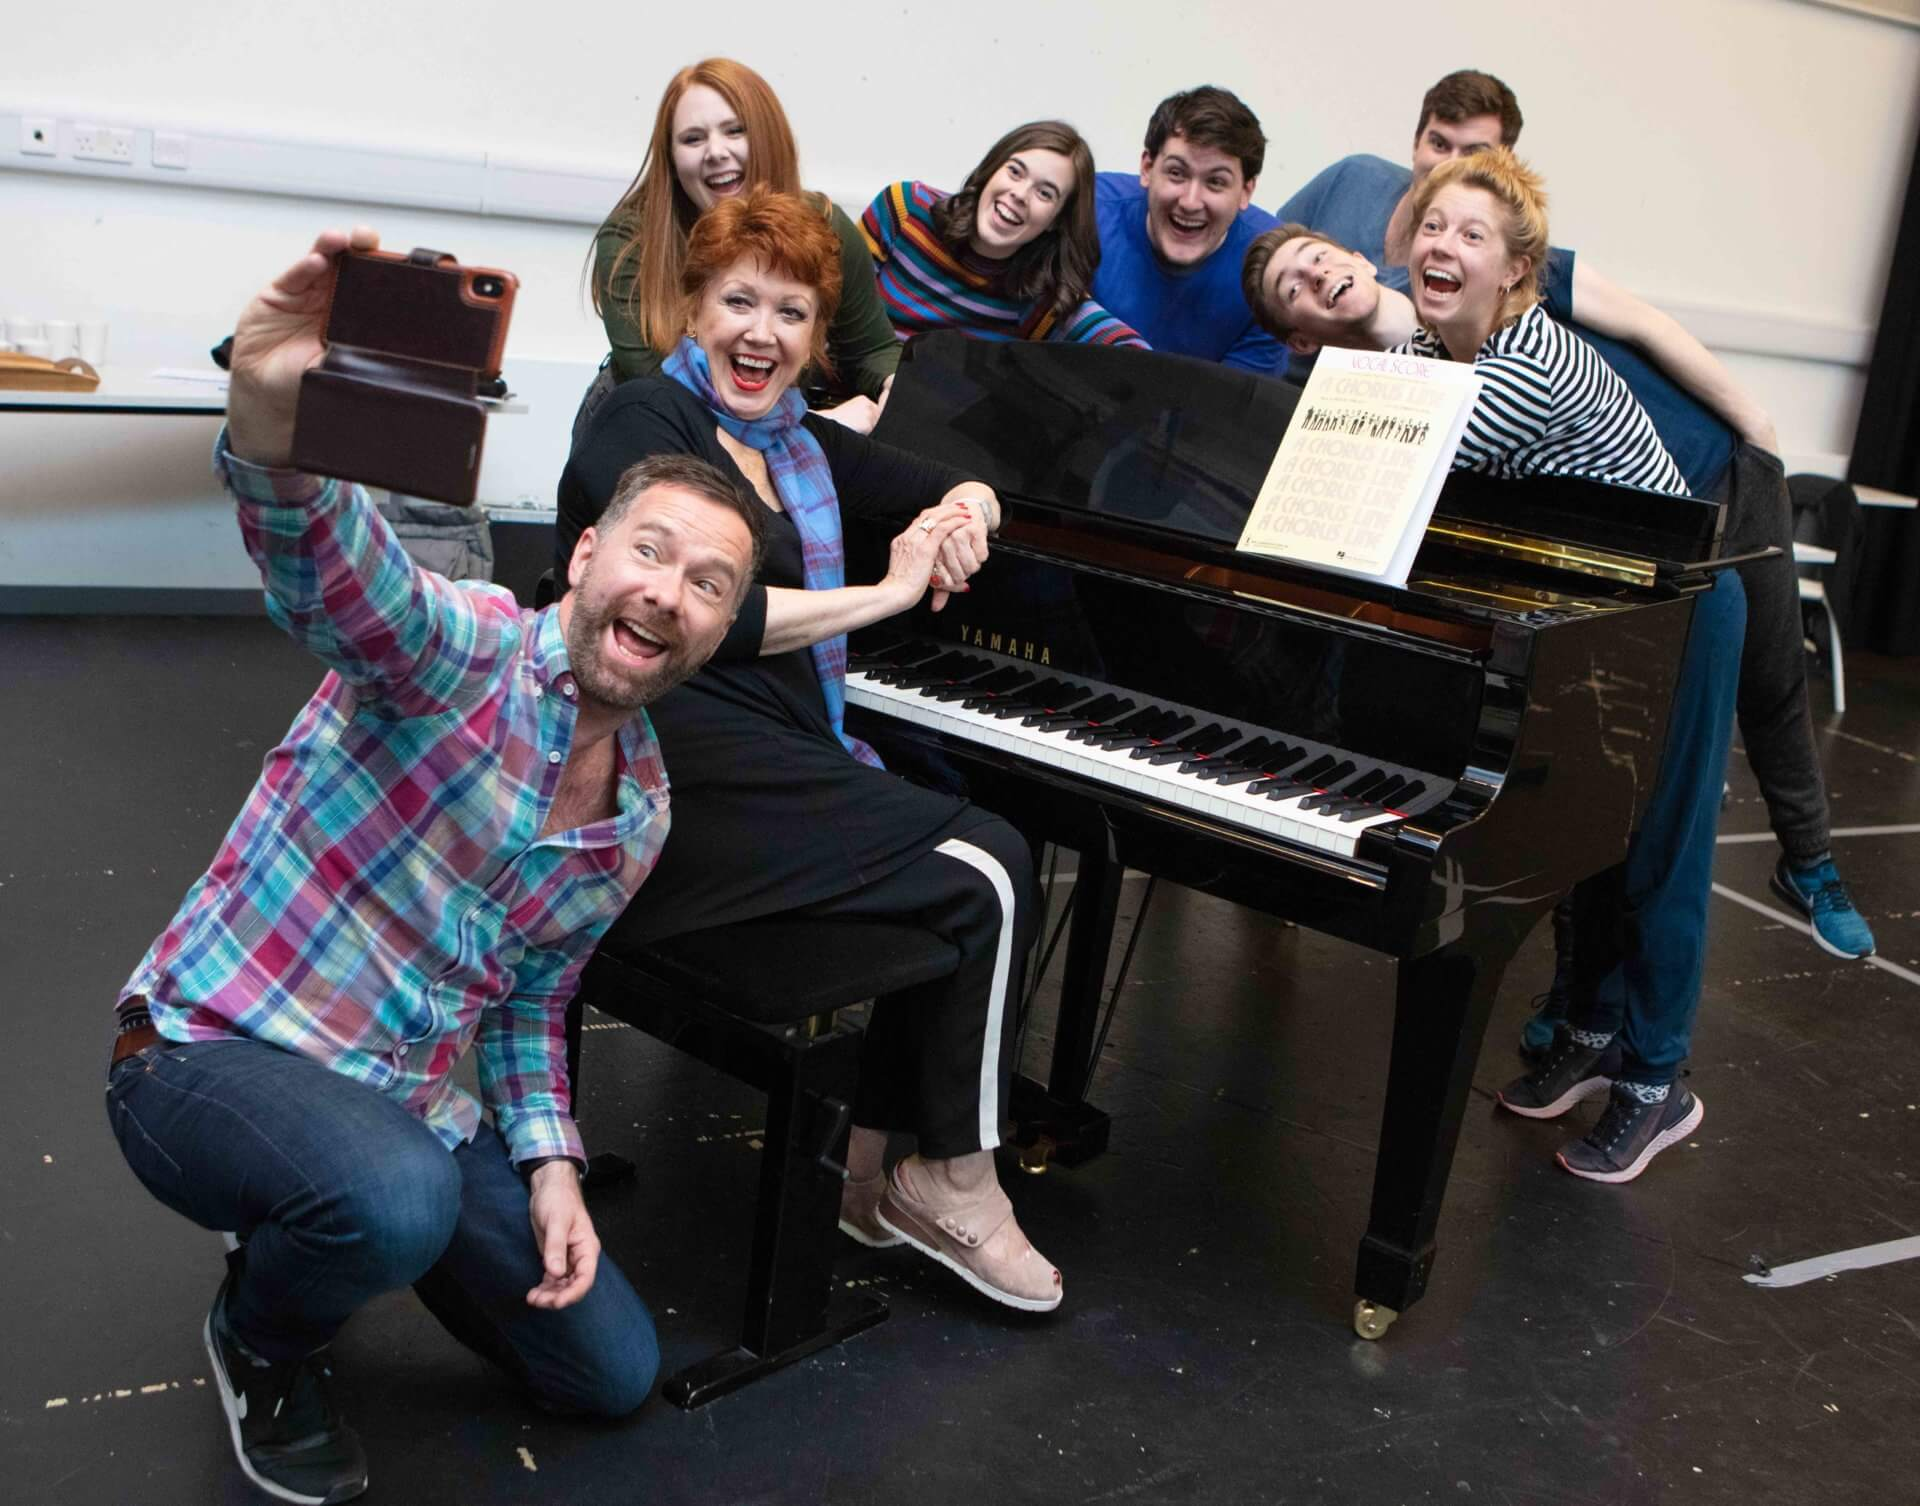 Broadway star Donna McKechnie at a piano with Musical Theatre students of the Royal Conservatoire of Scotland